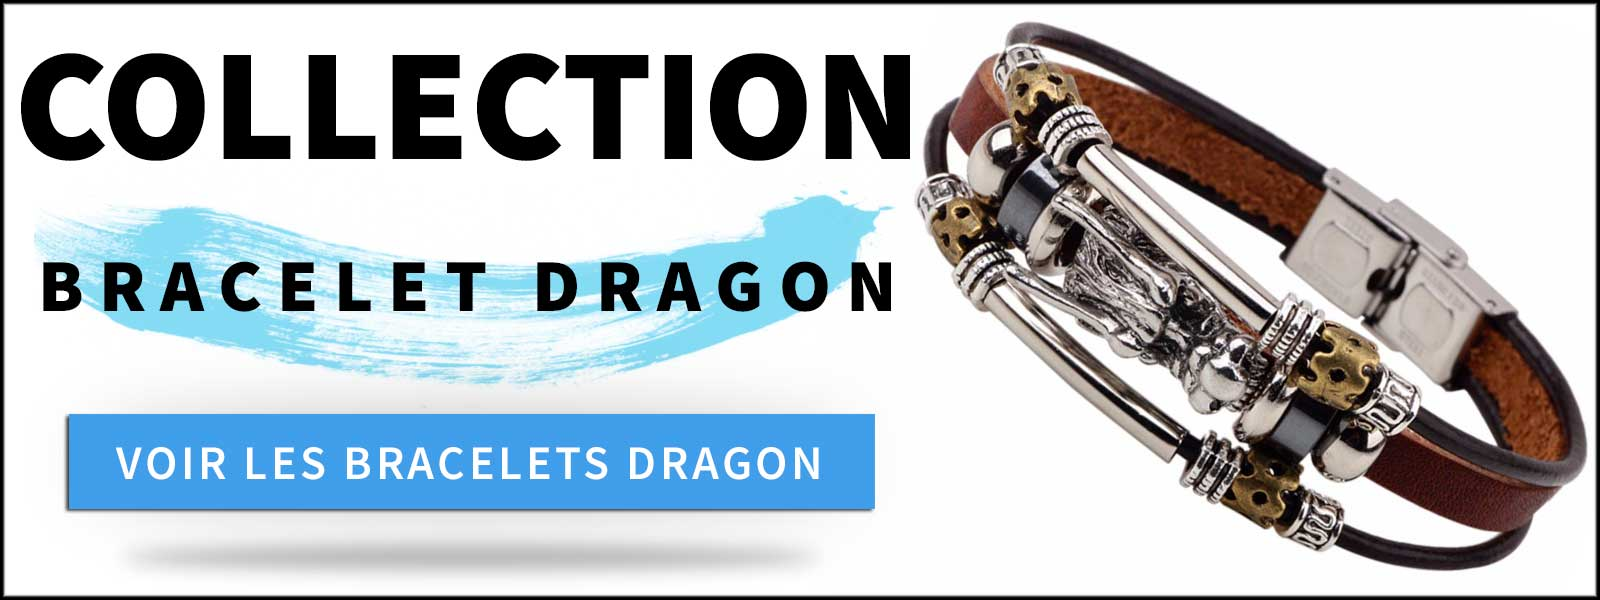 Collection bracelets dragons